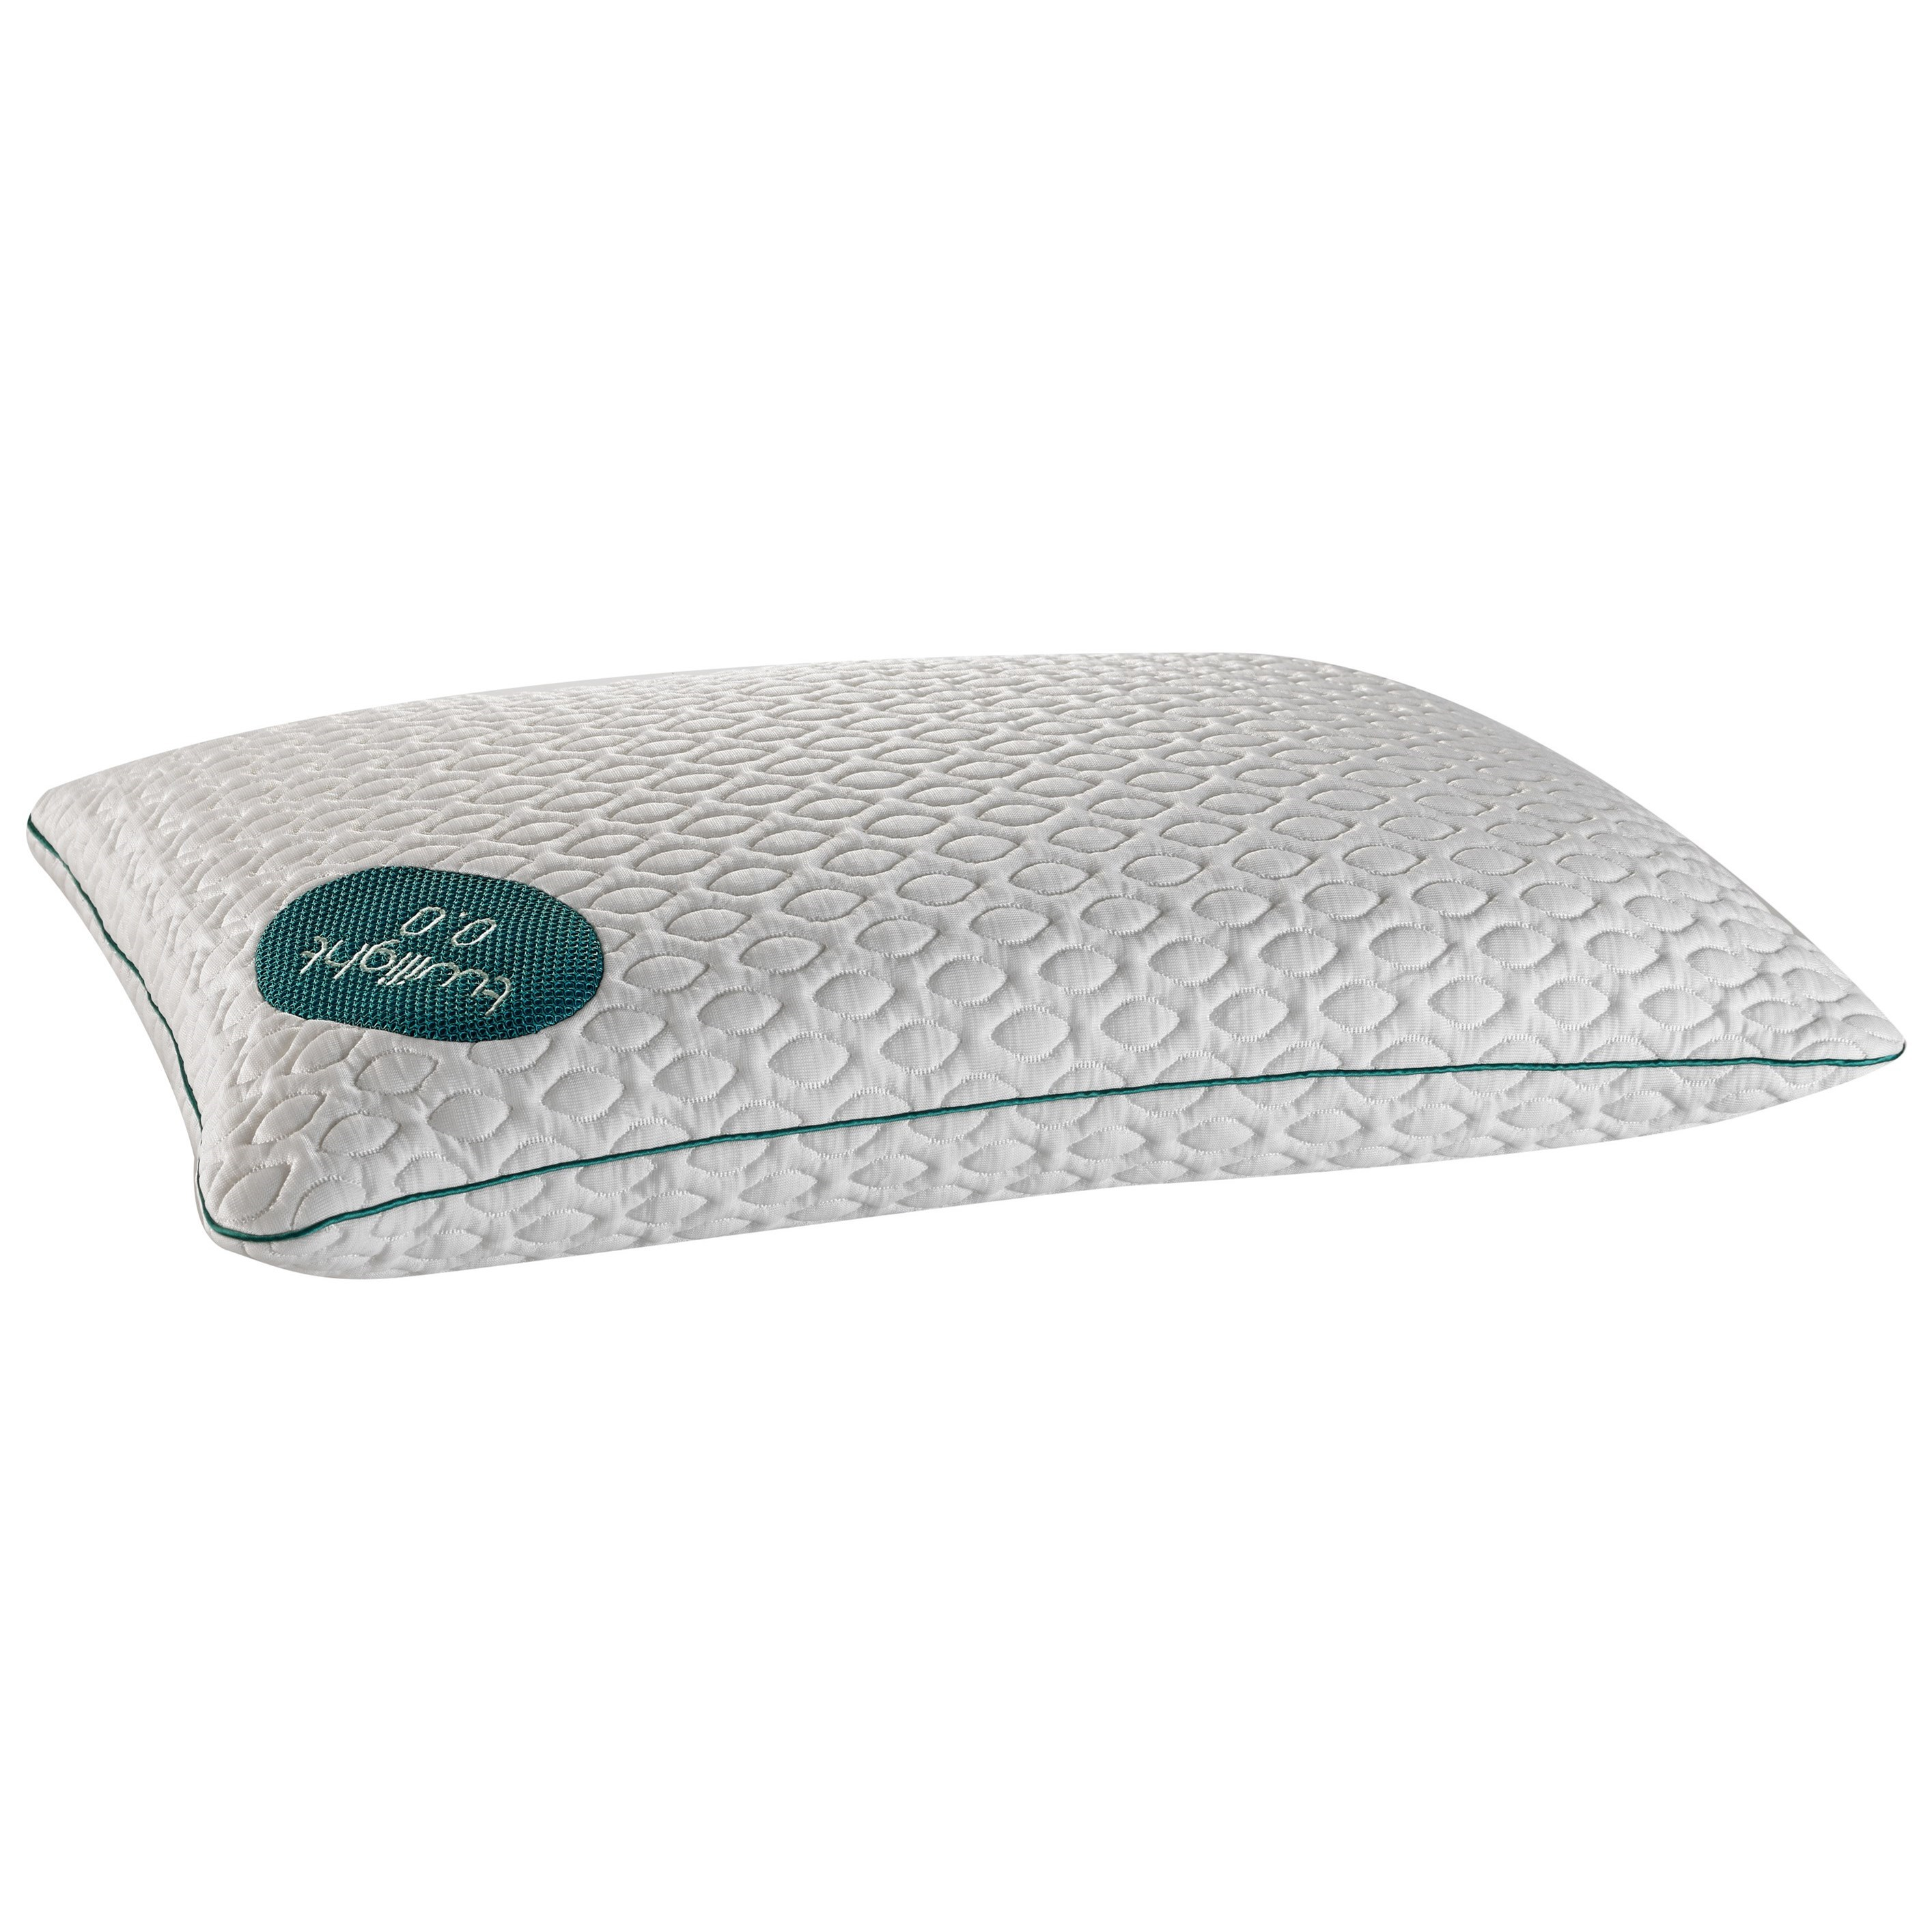 stack bedgear zoom level snooze to touch products pillow